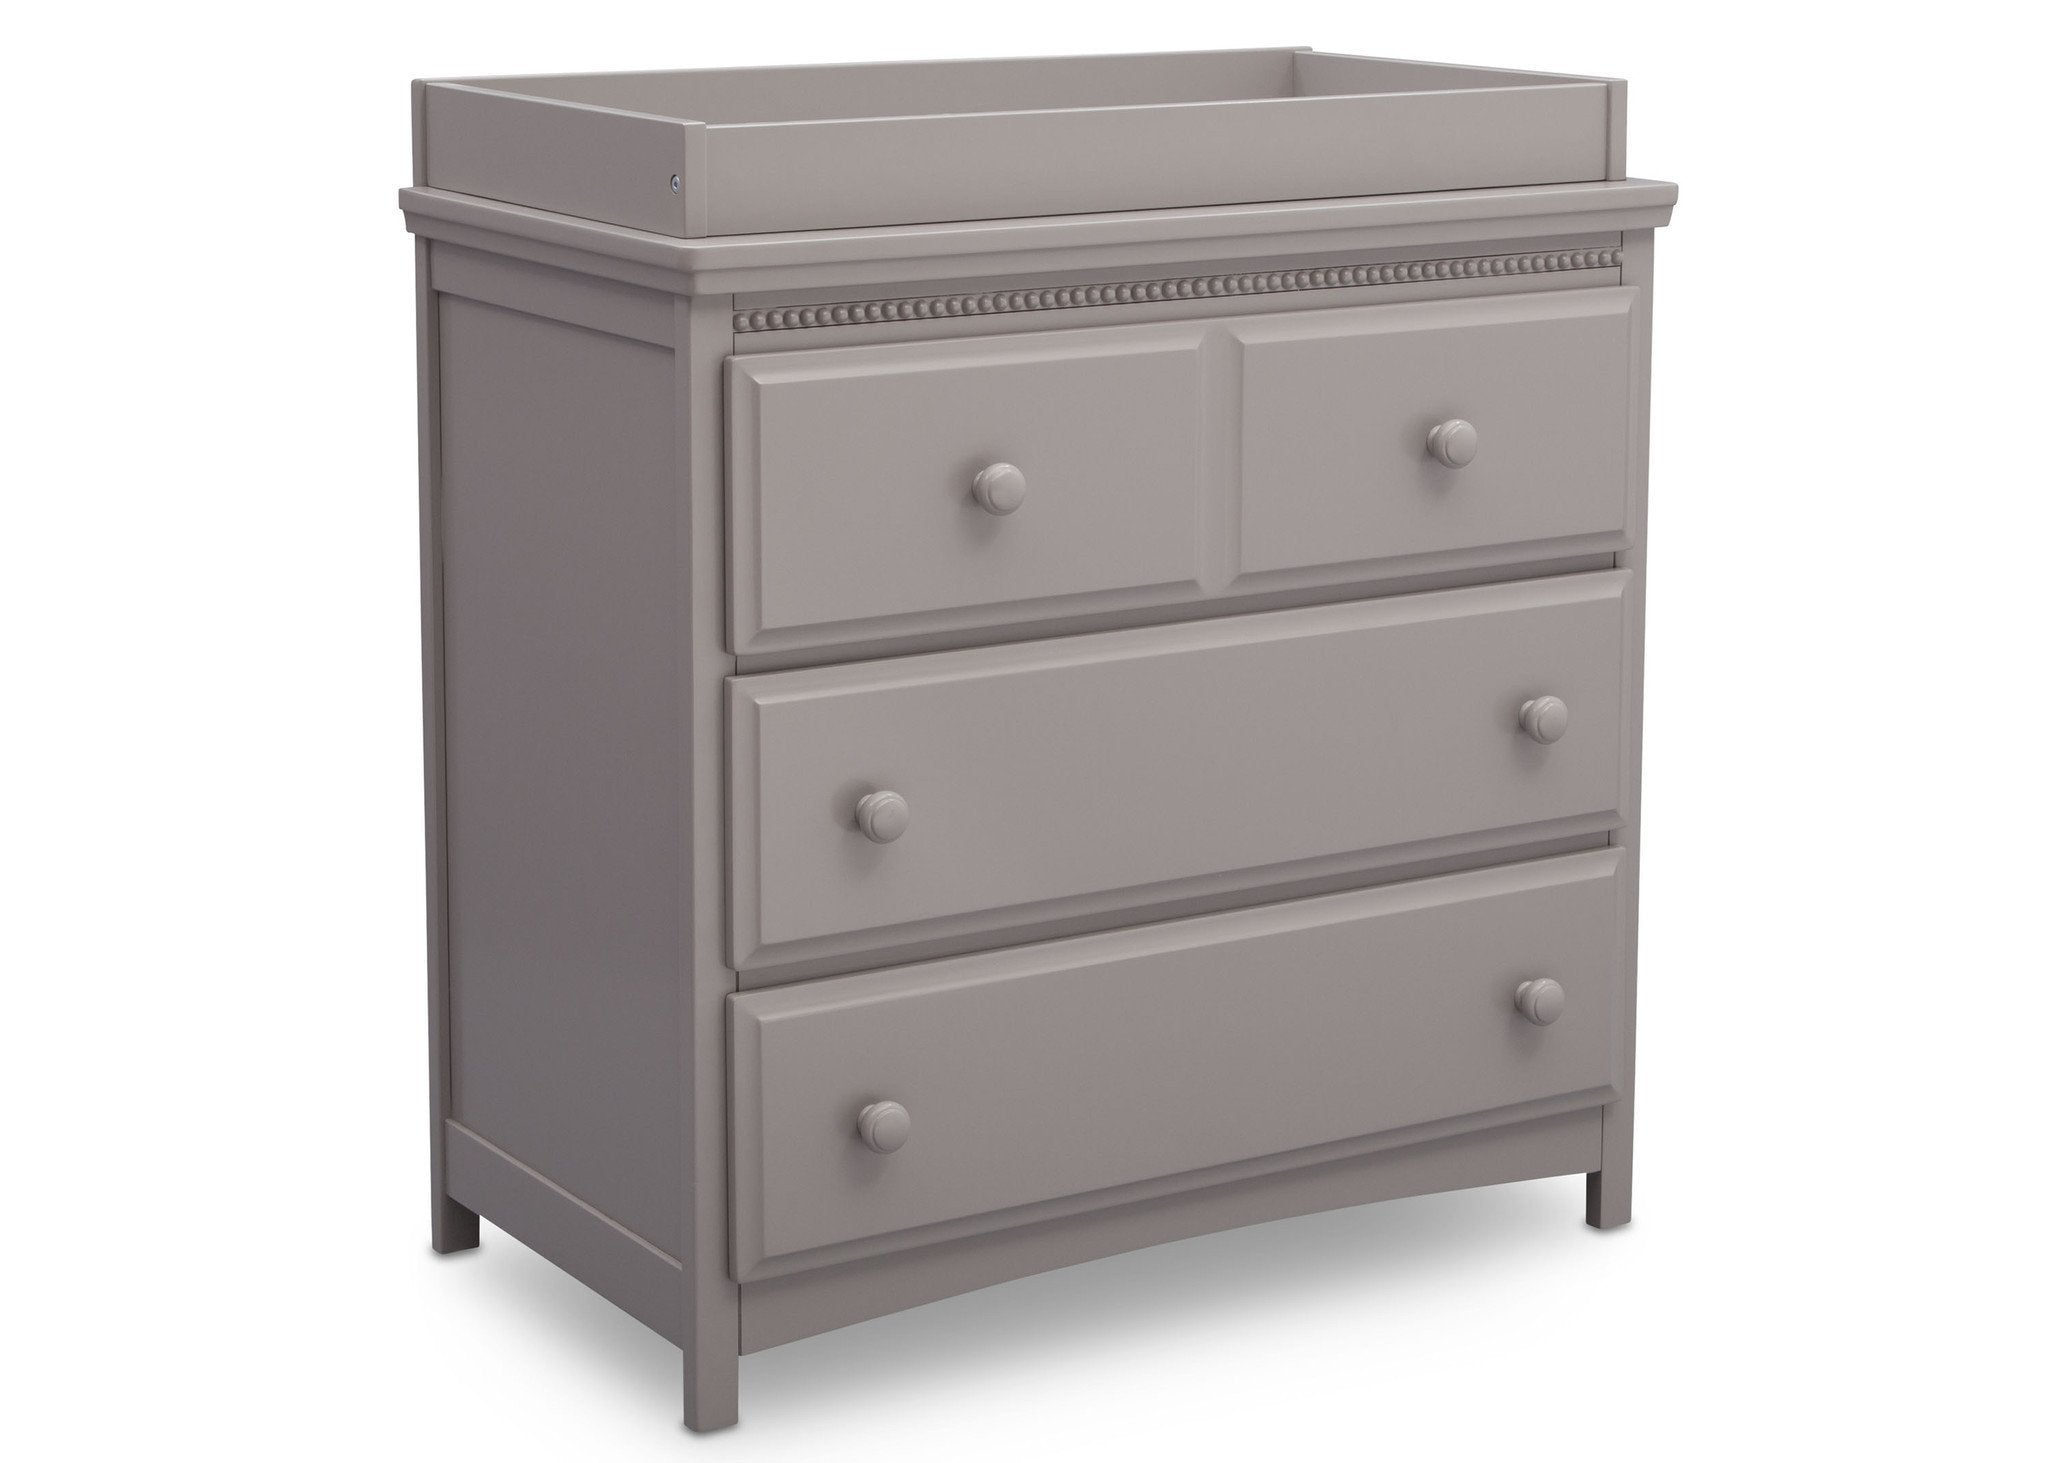 Delta Children Grey (026) Emerson 3 Drawer Dresser with Changing Top, Angled View a3a